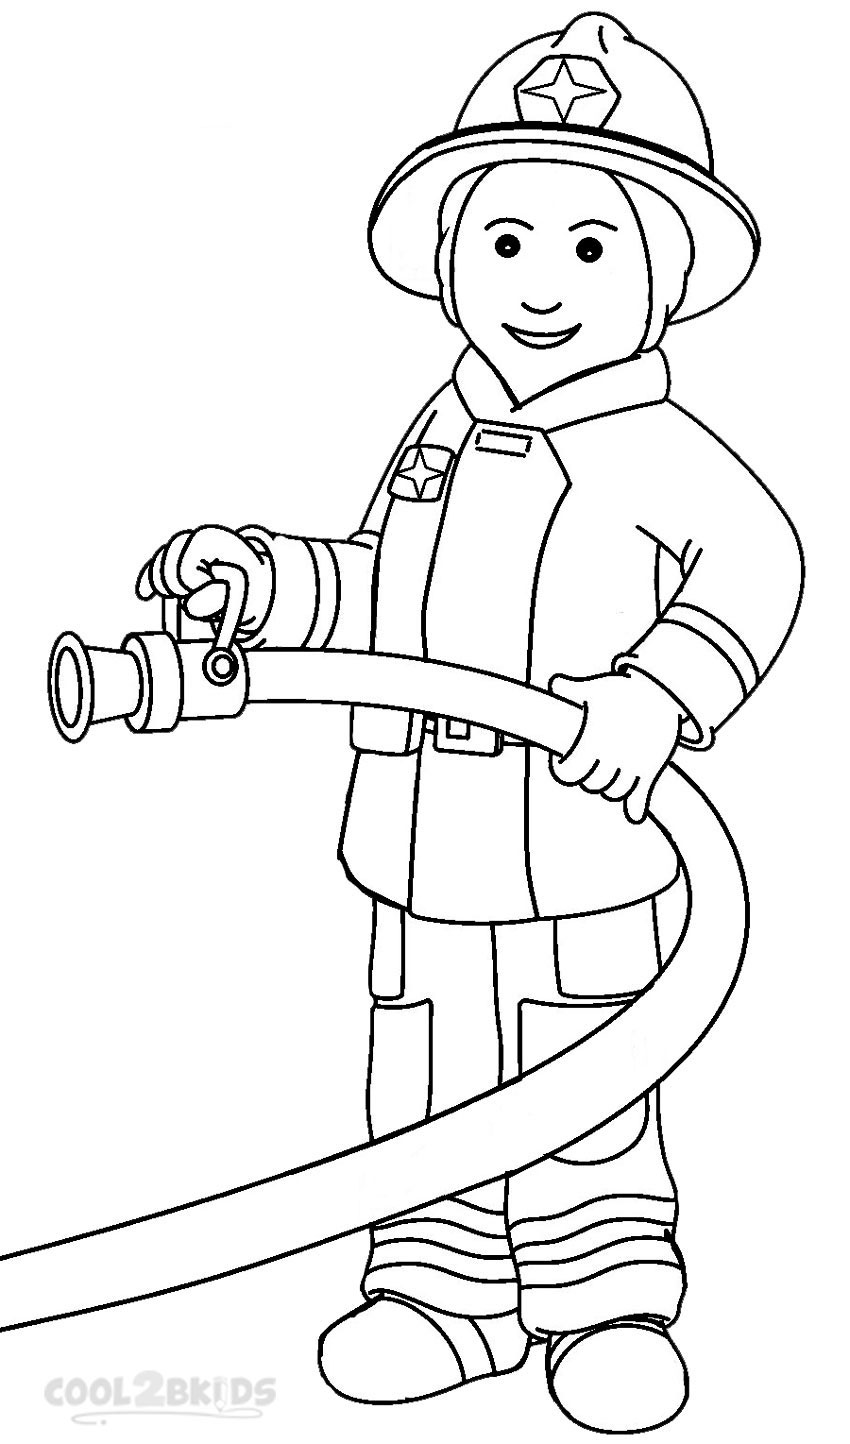 a coloring pages - photo#22